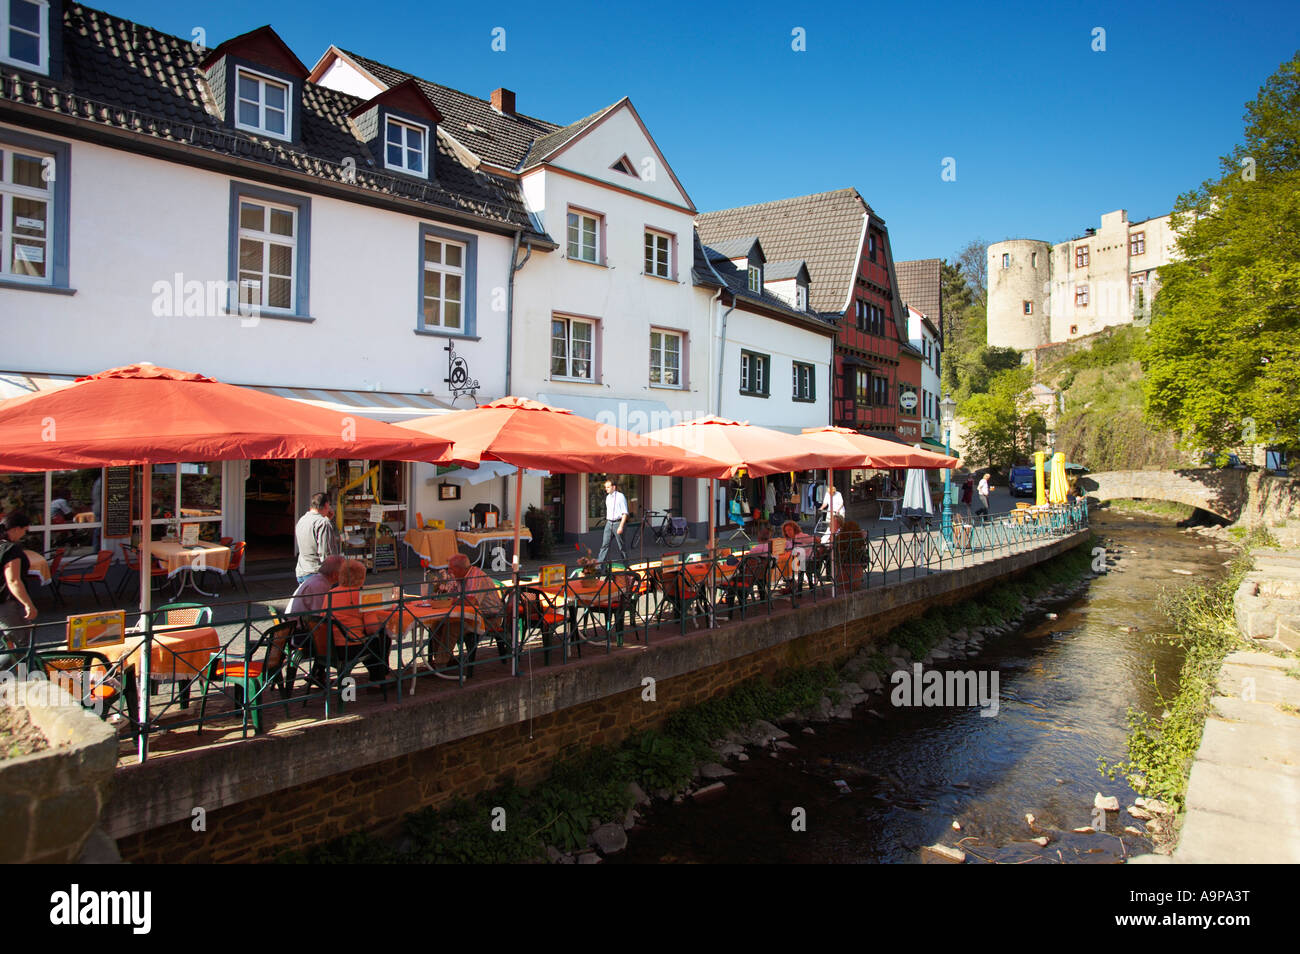 Pavement cafes by the Erft in historic Bad Munstereifel, Rhineland, Germany, Europe - Stock Image